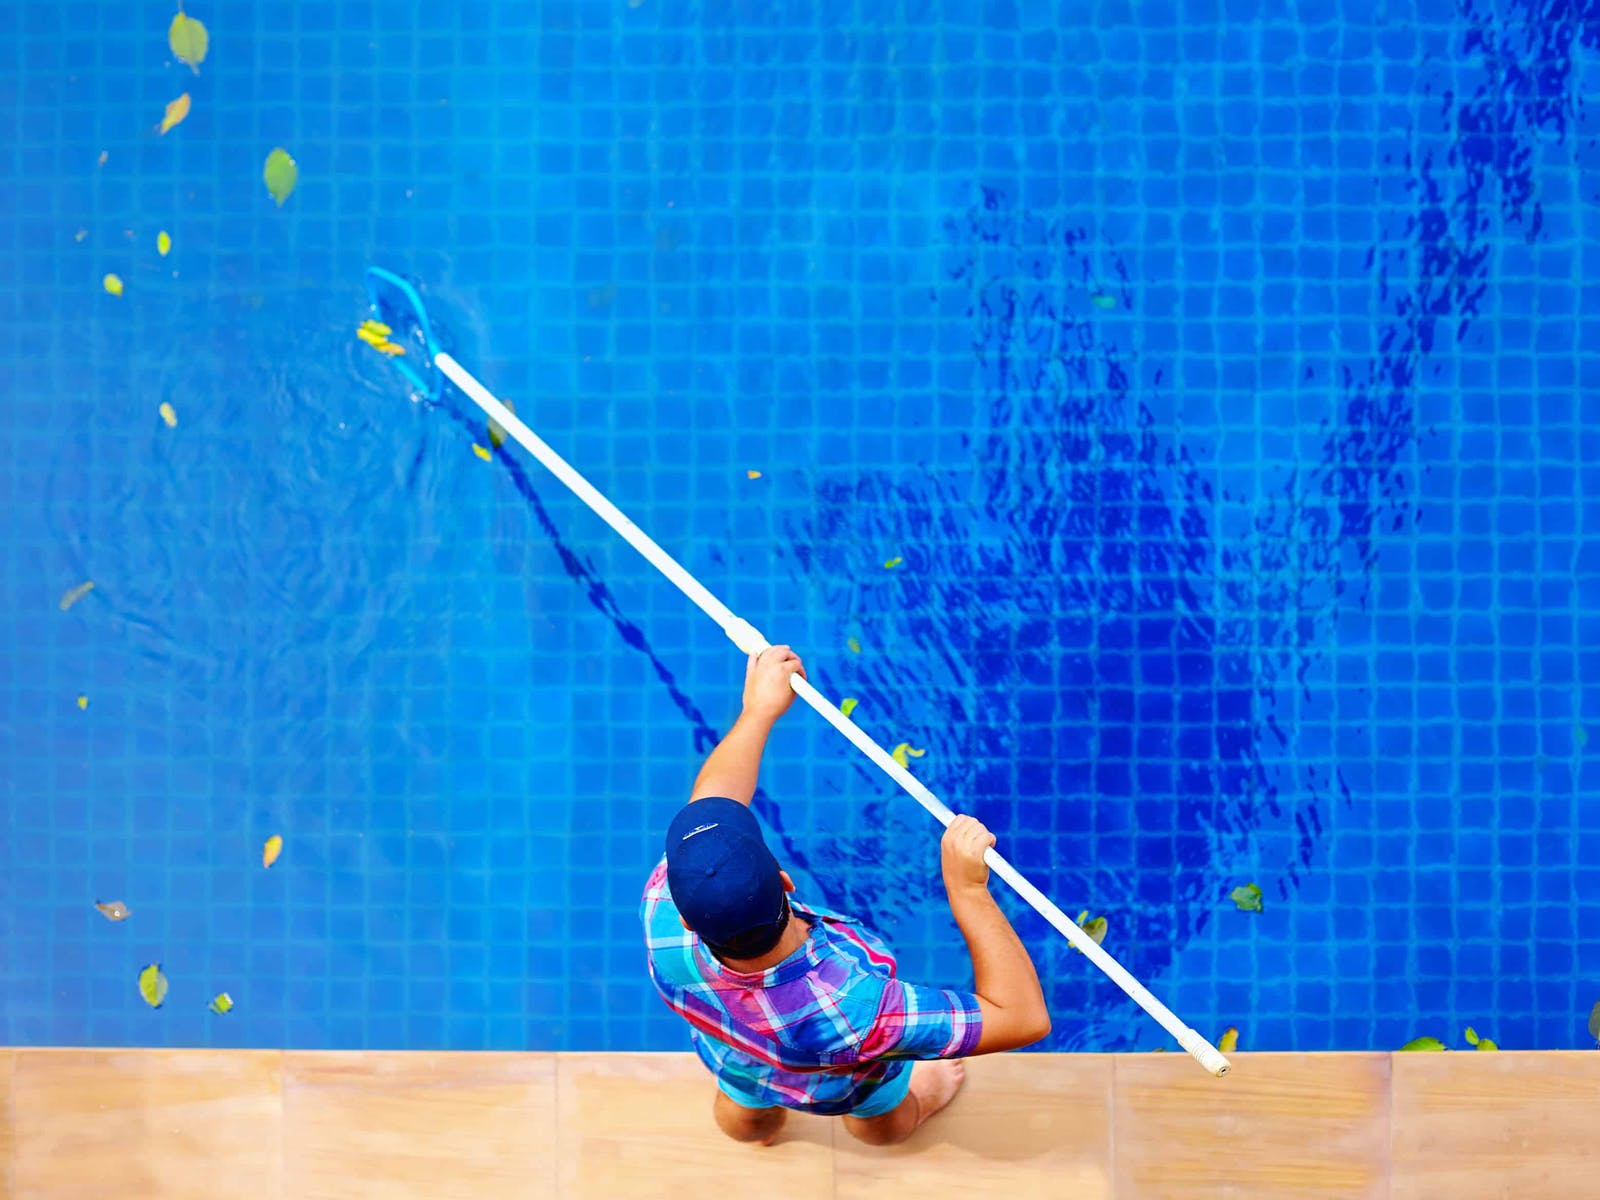 An employee cleaning leaves out of a pool